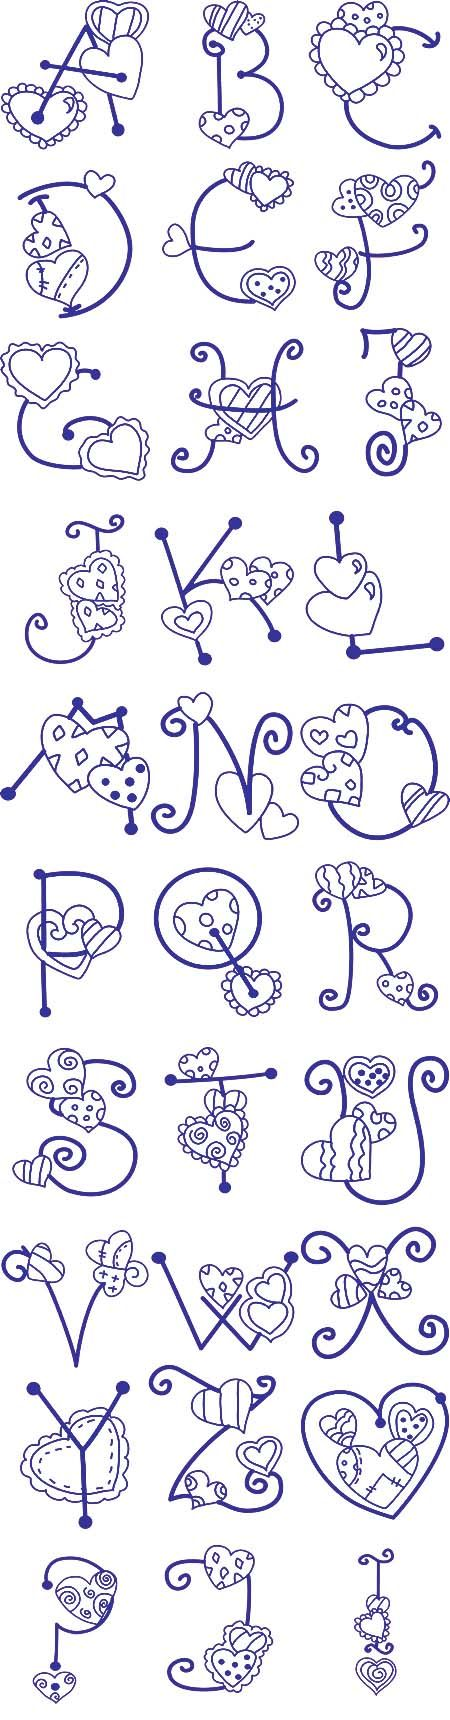 Free embroidery designs sweet embroidery designs index page templates doodles 2 - Appliques exterieures ontwerp ...